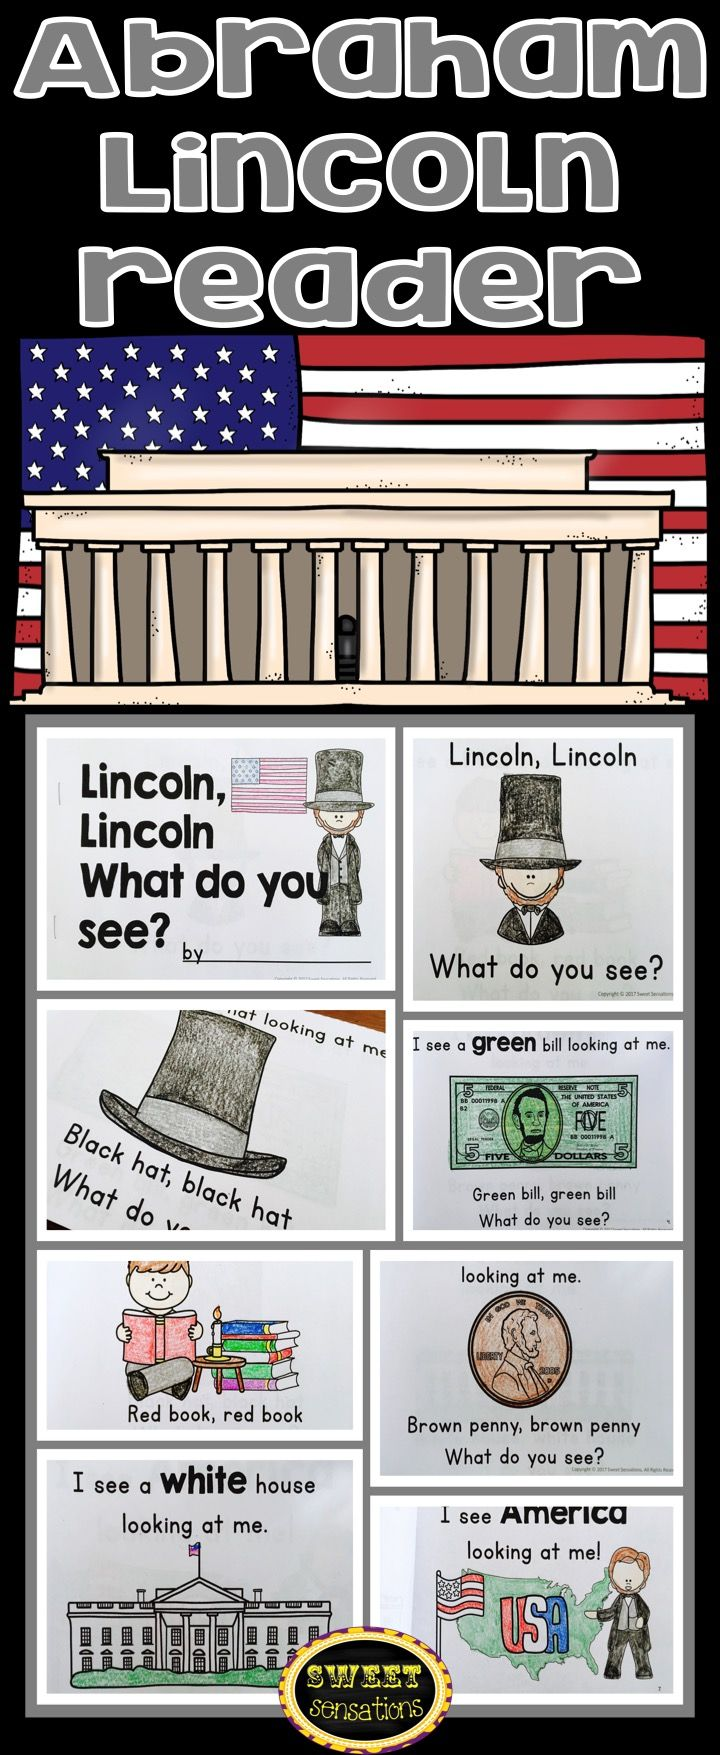 Simple Abraham Lincoln predictive reading text activity for students to reinforce their color words and be introduced to Abraham Lincoln and Presidents day.